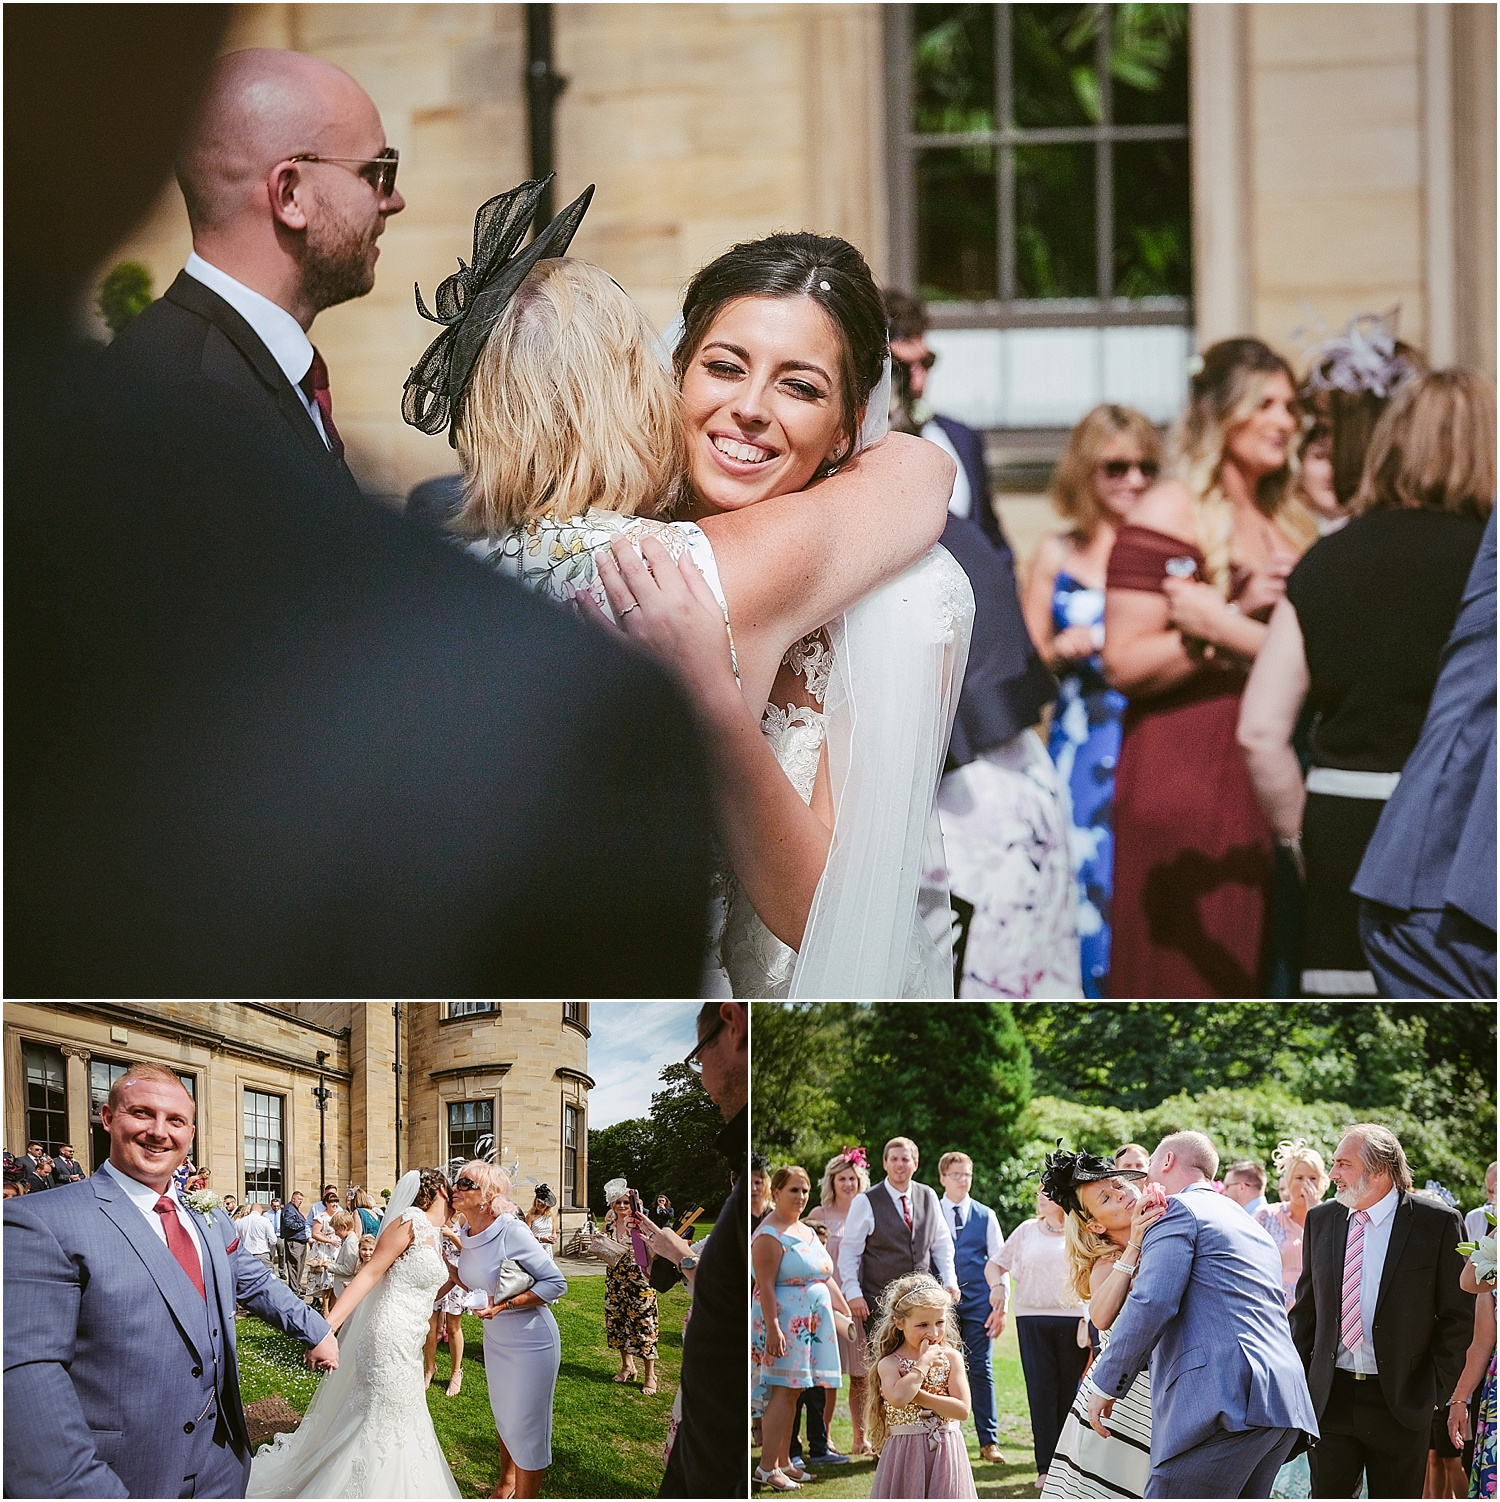 Wedding at Beamish Hall - wedding photography by www.2tonephotography.co.uk 163.jpg